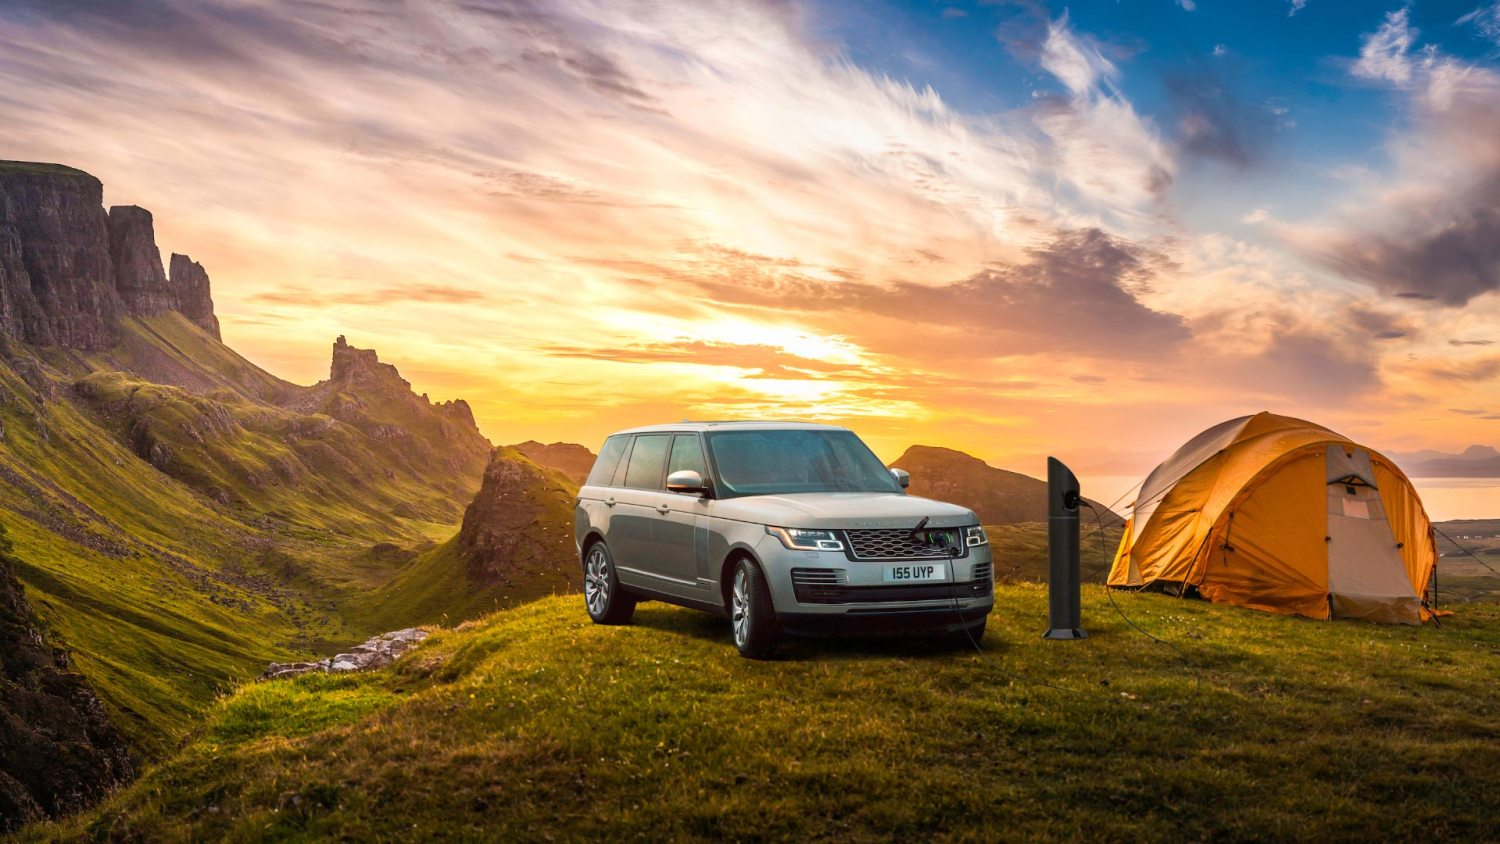 Land Rover April Fools' Day